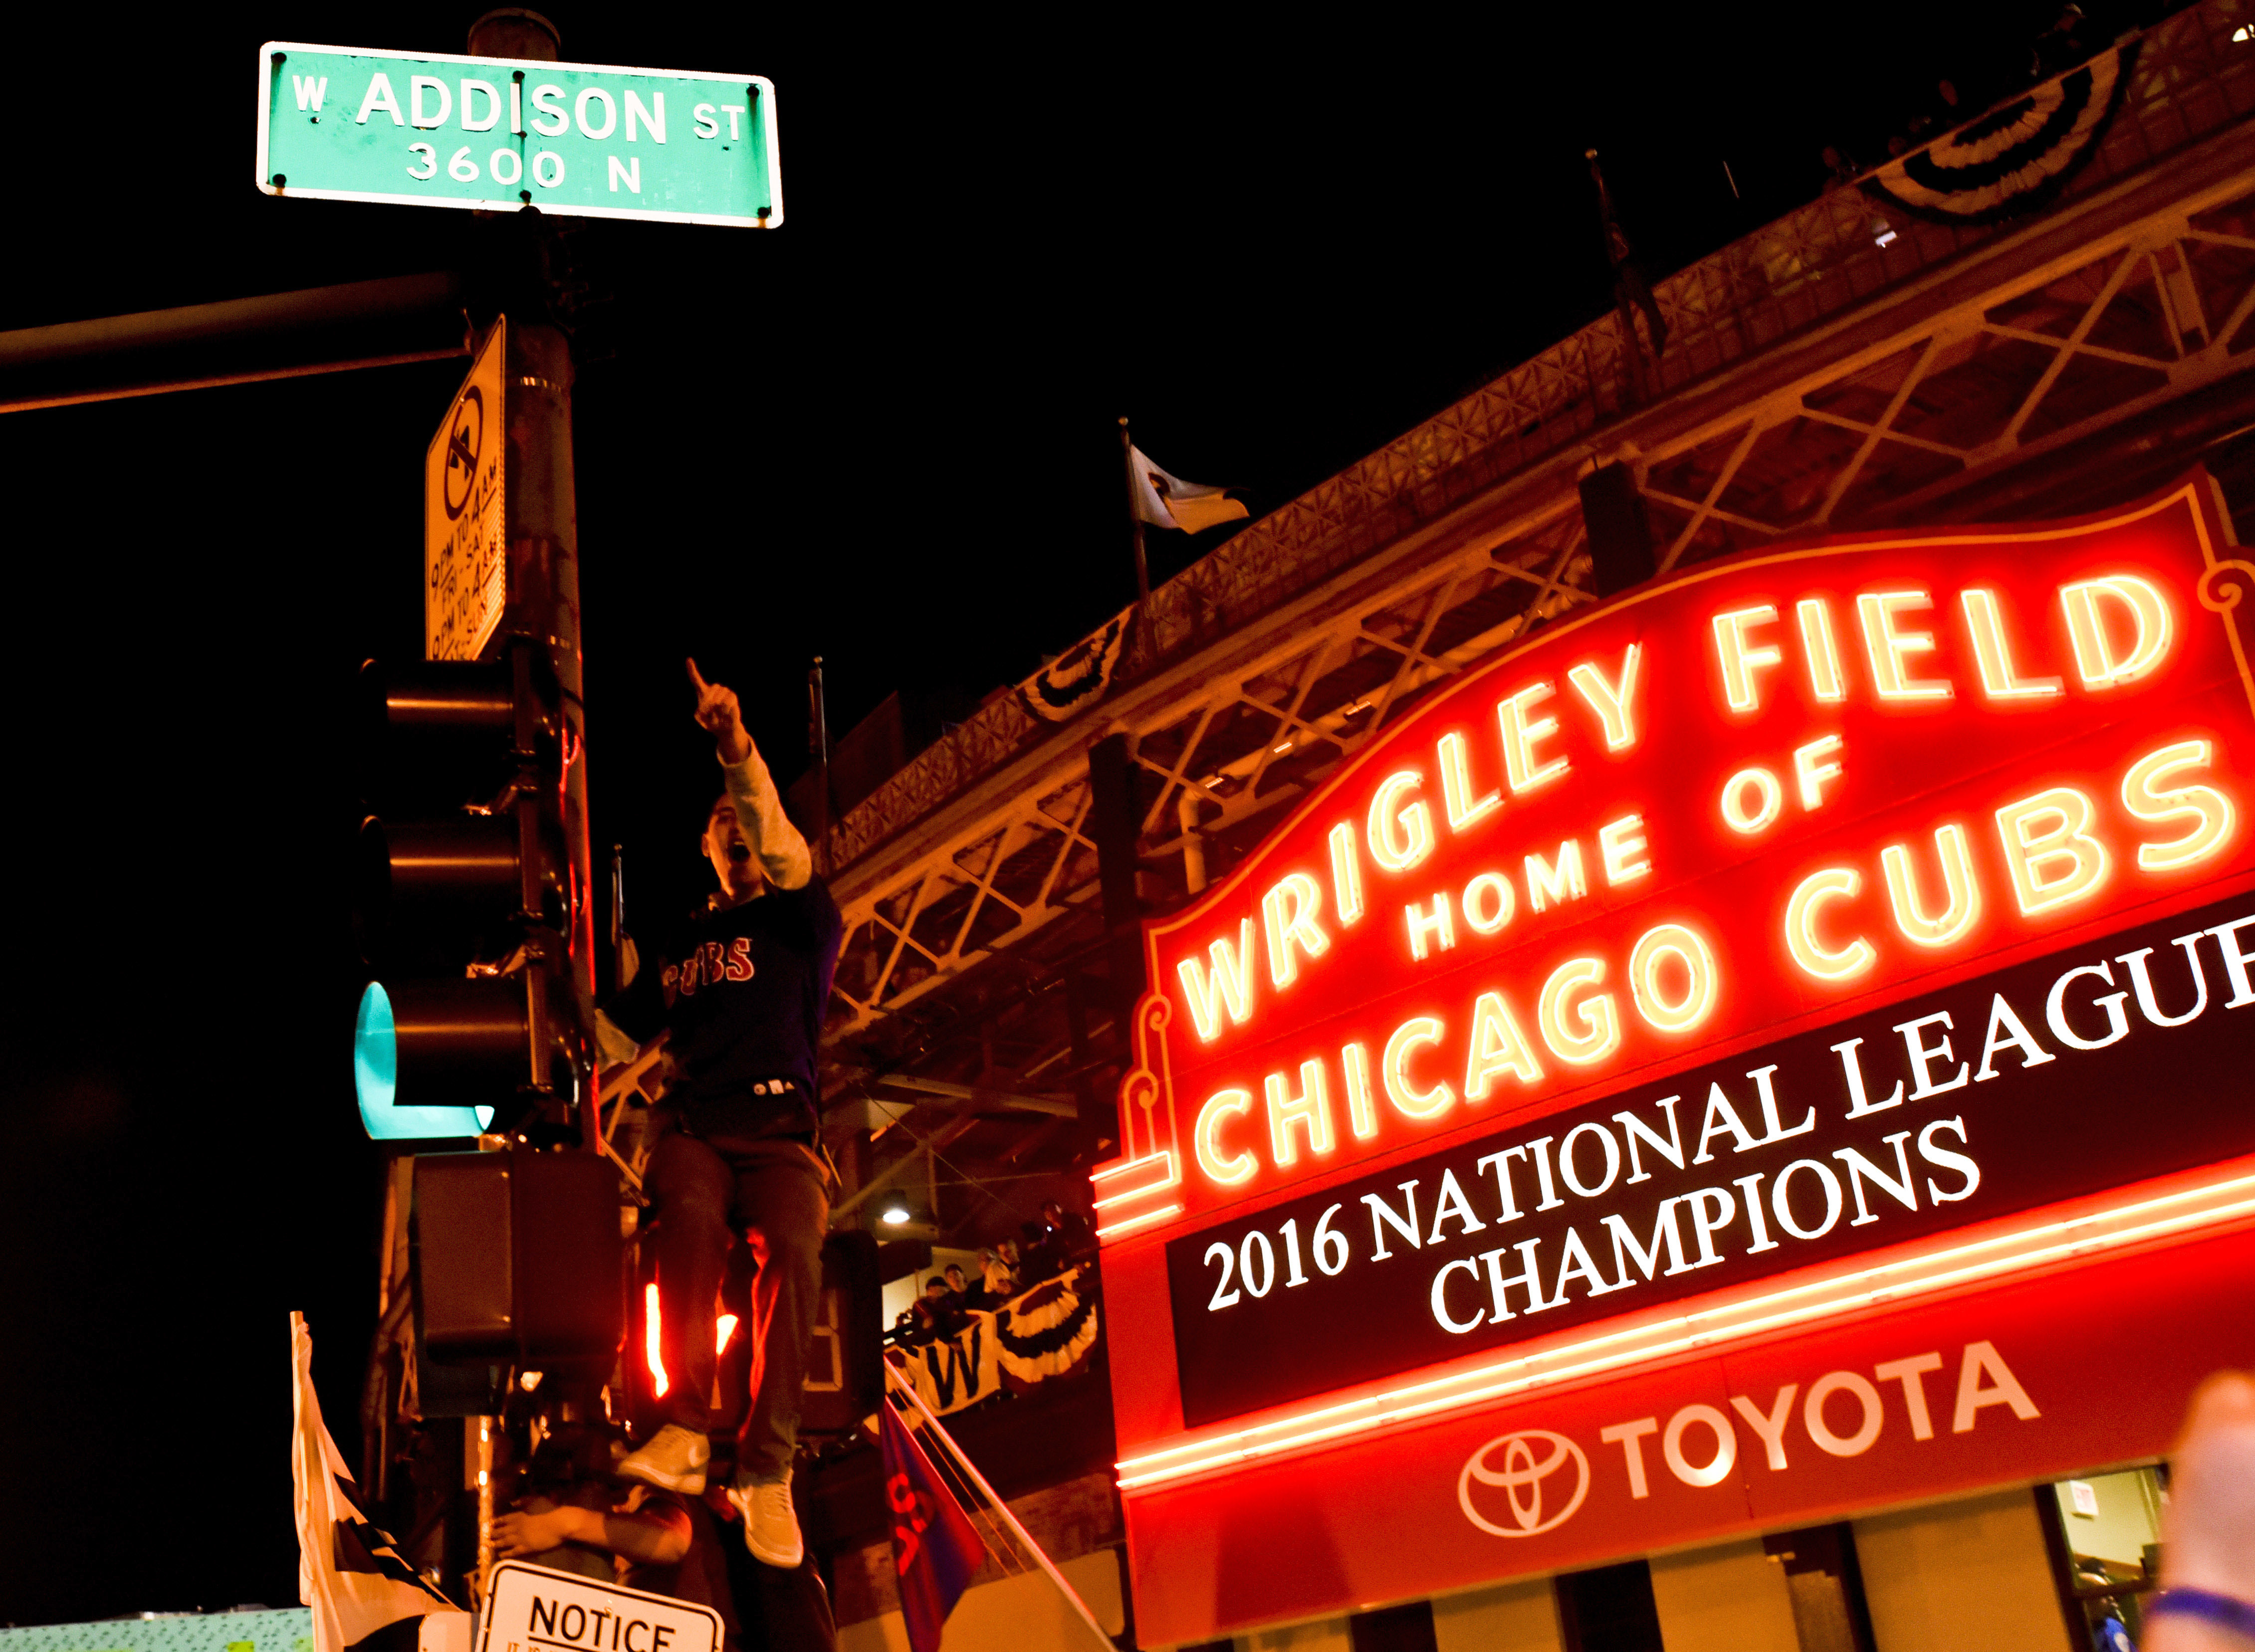 Chicago Cubs fans celebrate outside Wrigley Field after the Cubs defeated the Los Angeles Dodgers 5-0 in Game 6 of baseball's National League Championship Series, Saturday, Oct. 22, 2016, in Chicago. The Cubs advanced to the World Series. (AP Photo/Matt M